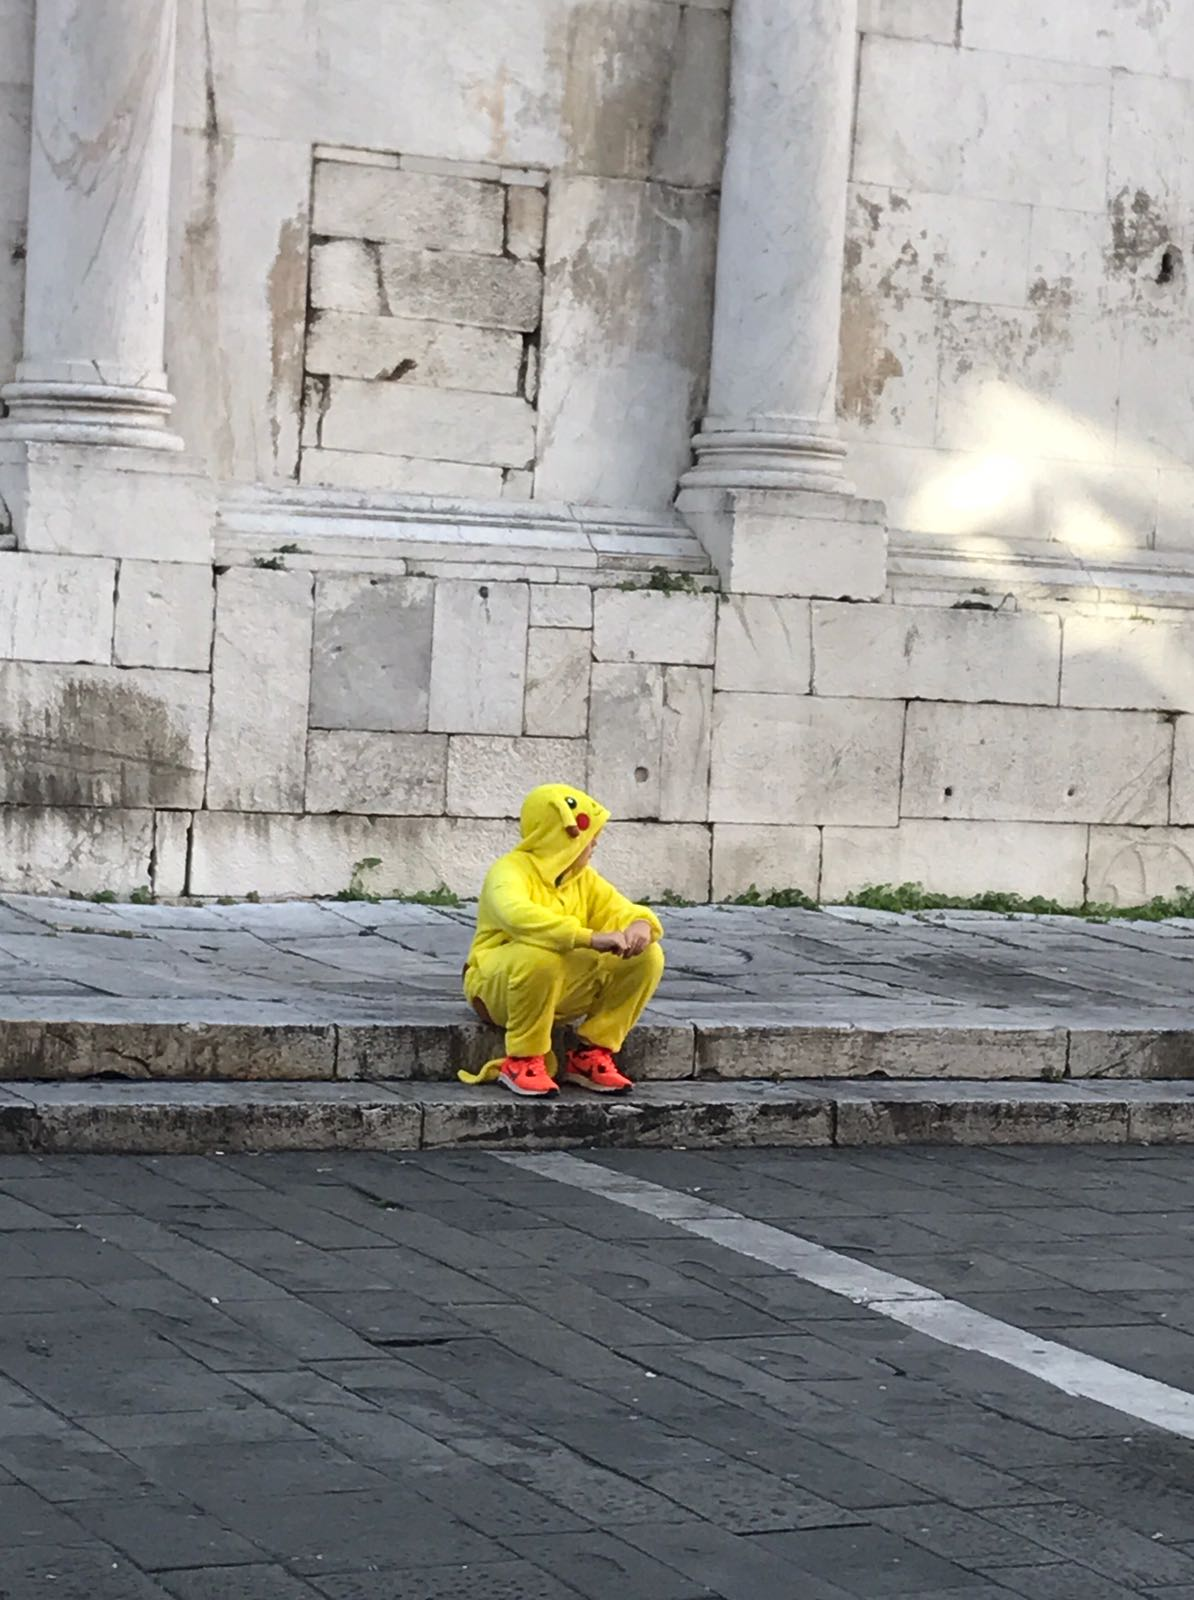 Kid dressed in a pikachu onesie sitting on its own next to a church